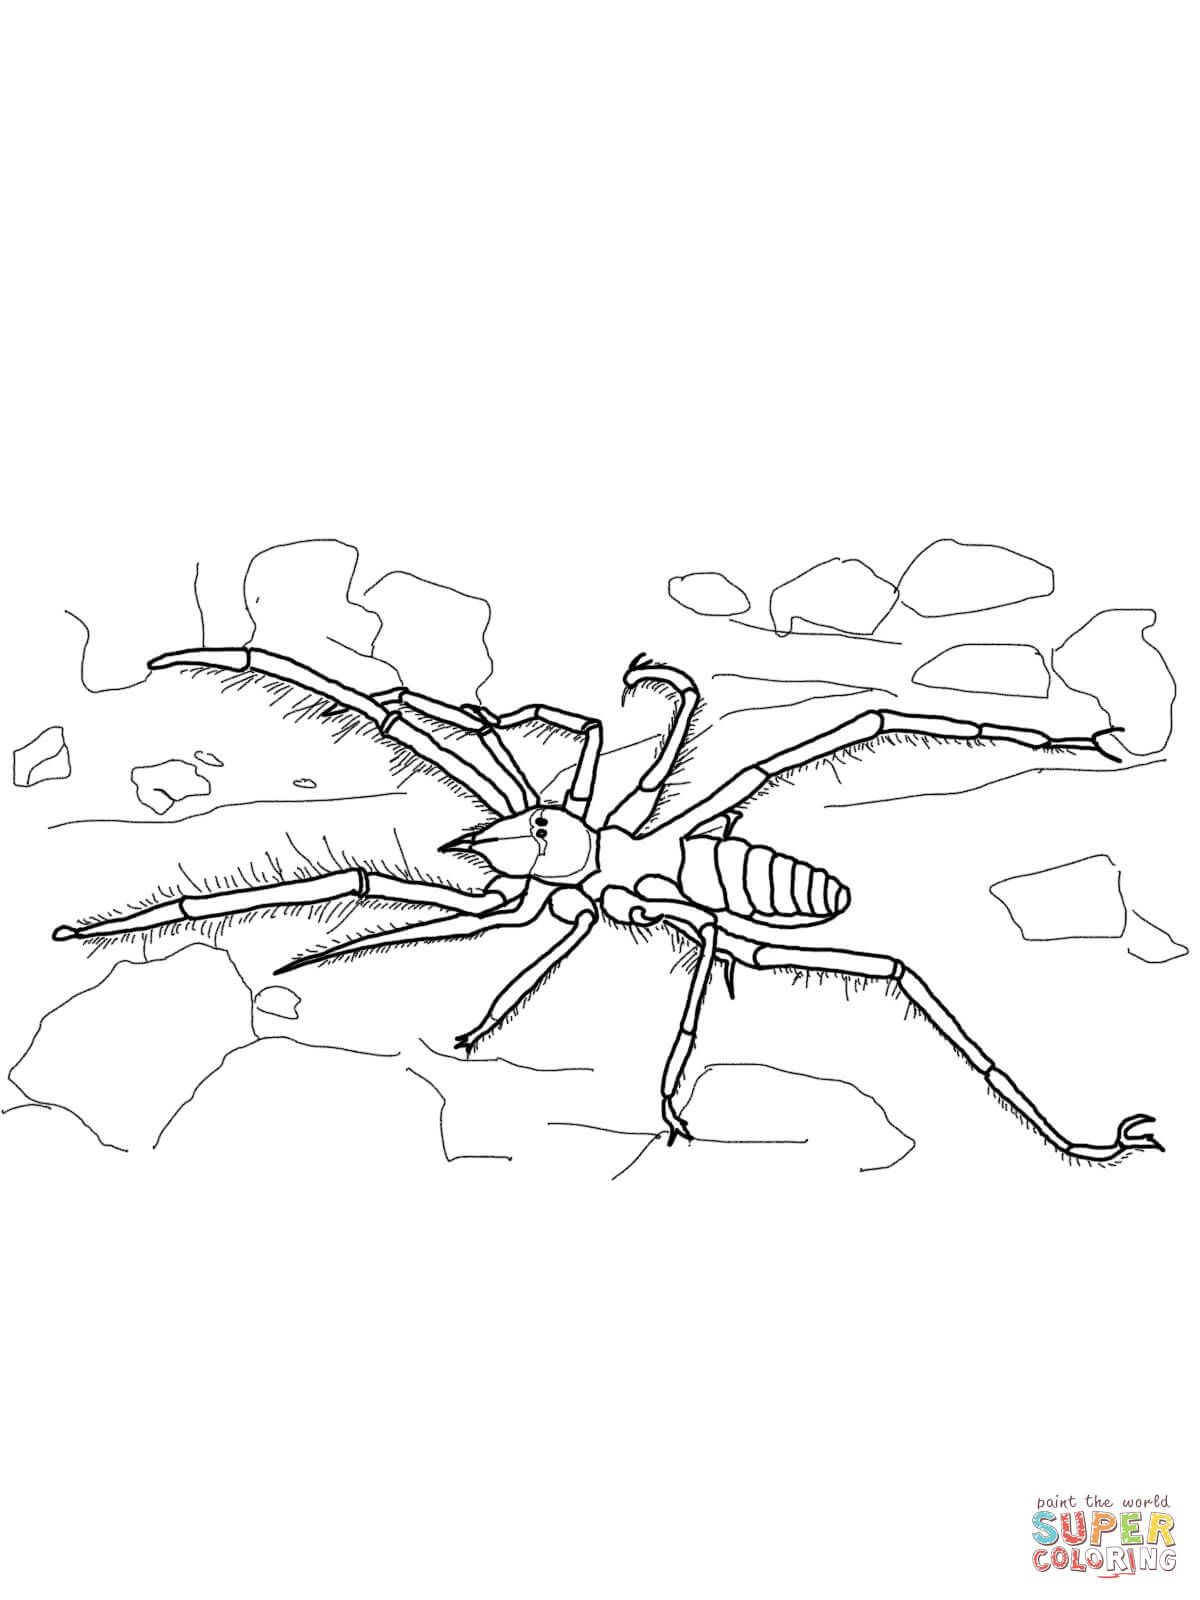 Incy Wincy Spider coloring page | Free Printable Coloring Pages | 1600x1200